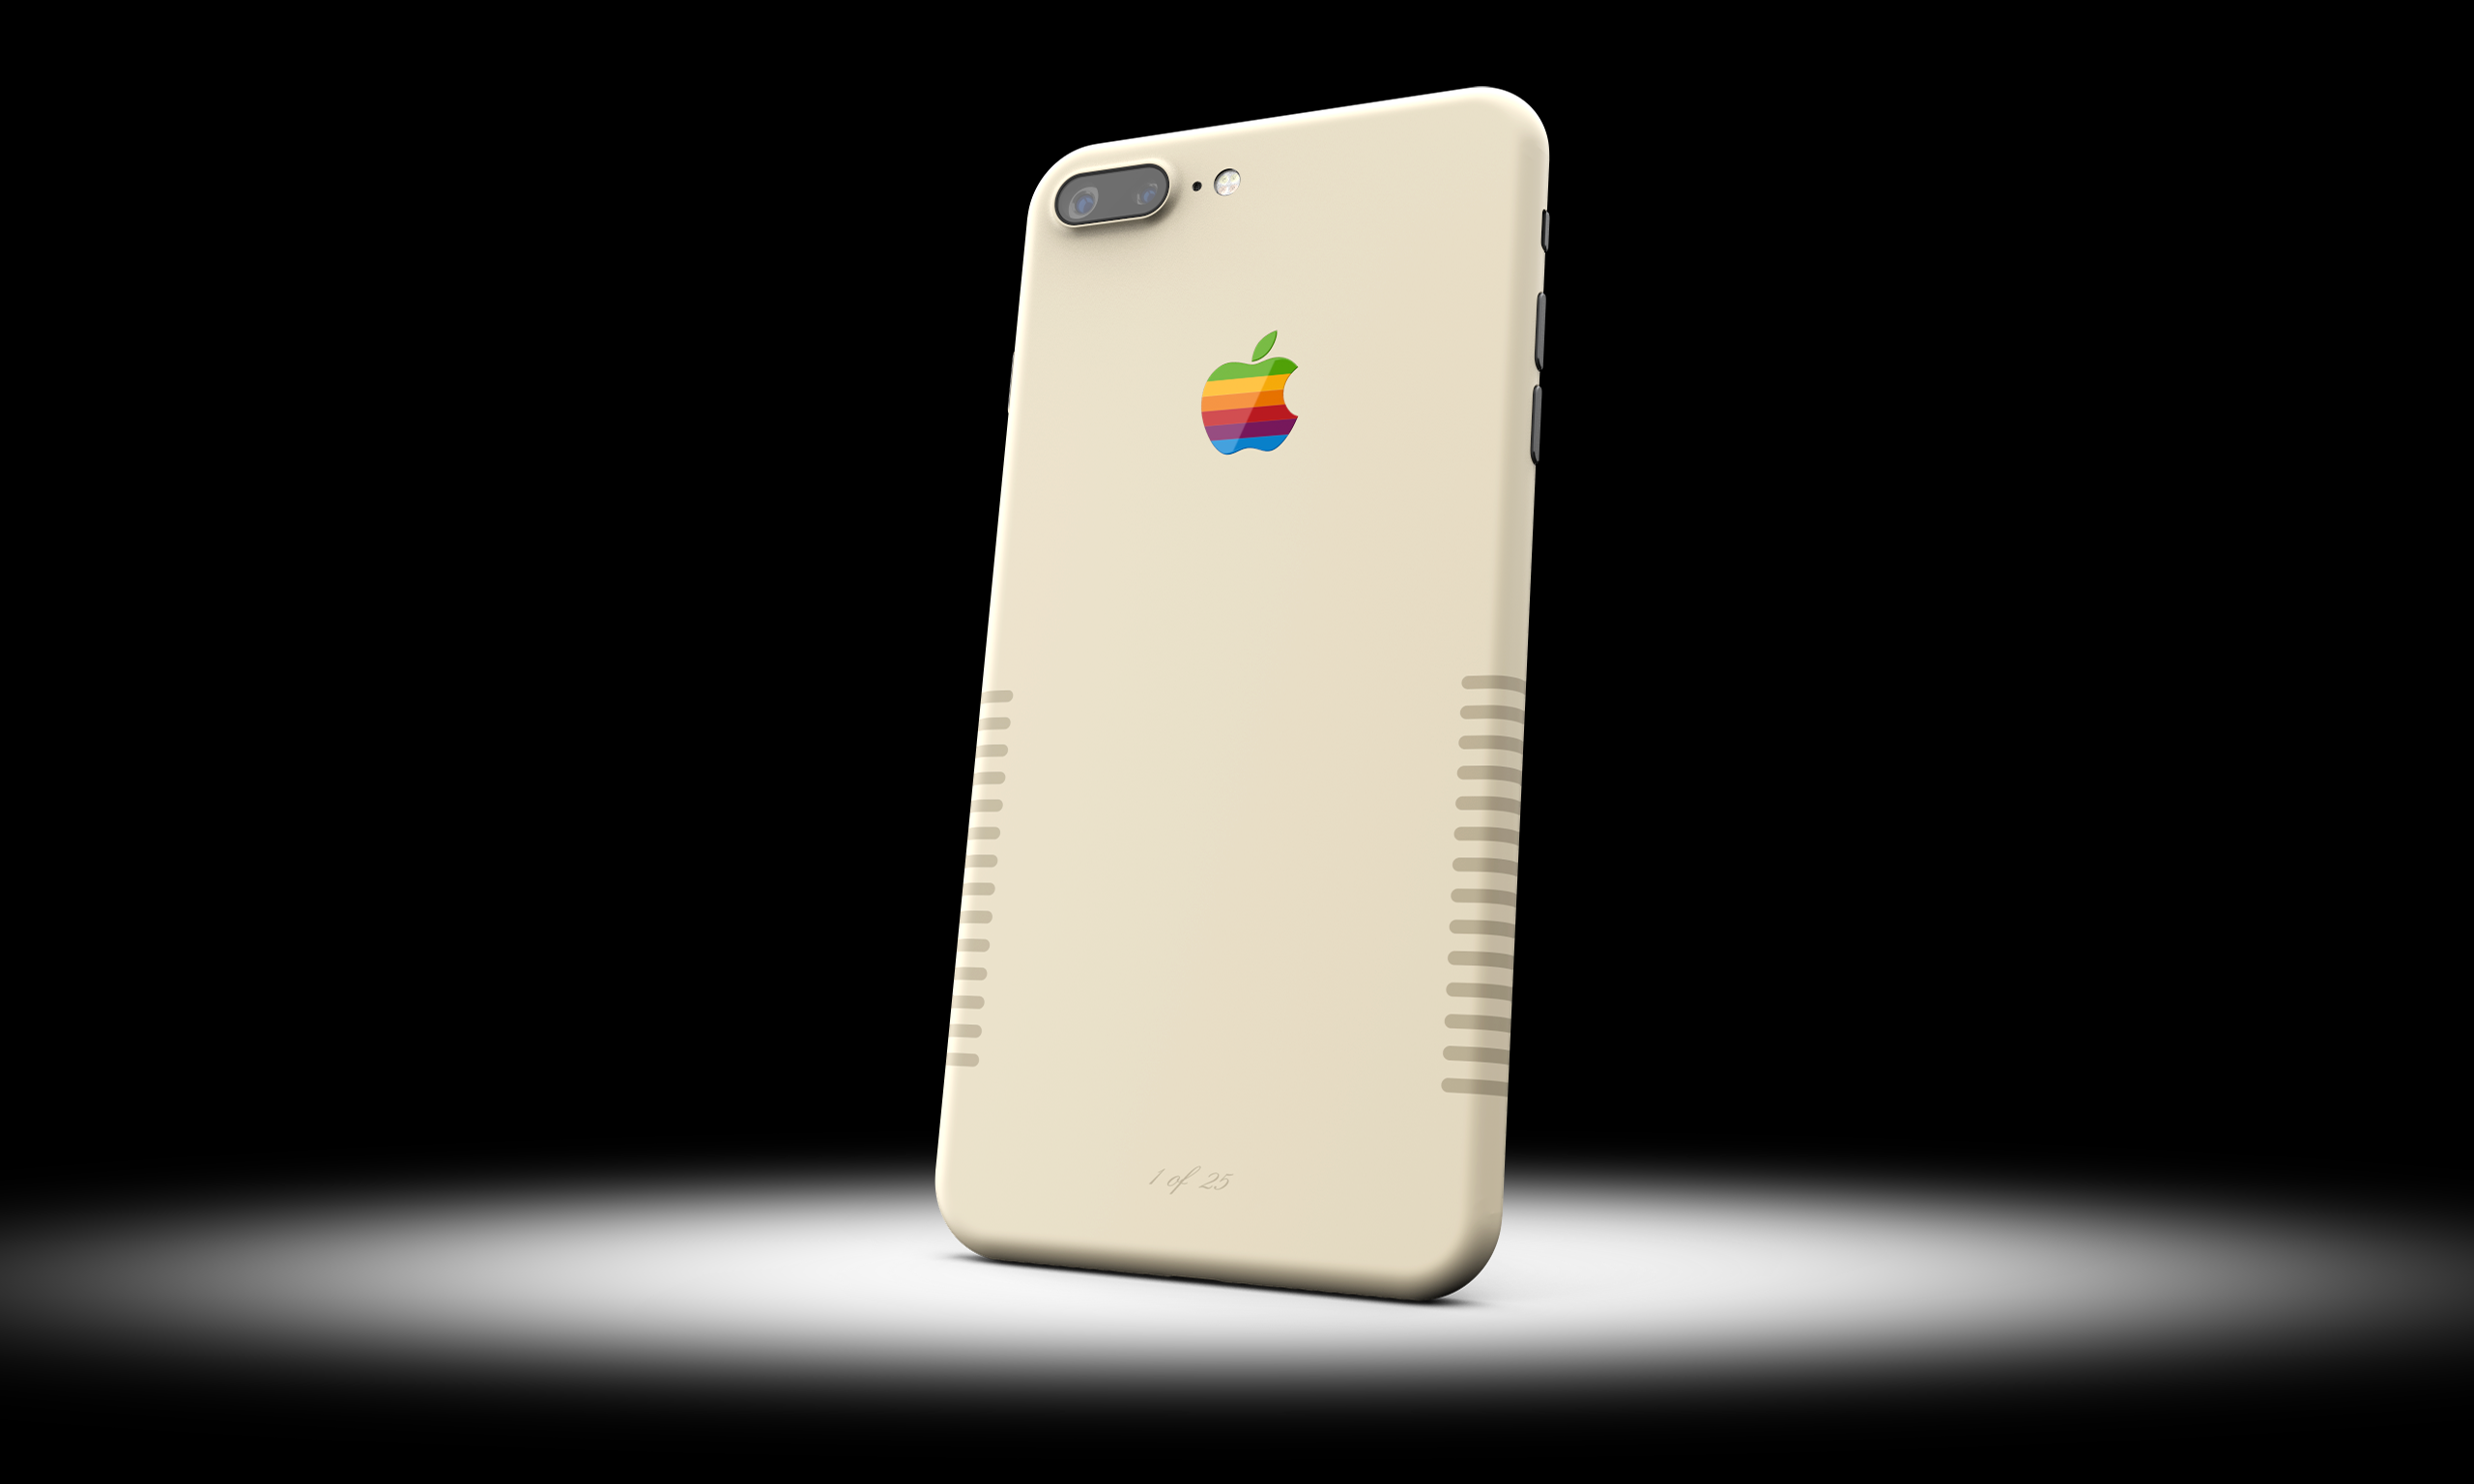 Iphone S Sim Free Model